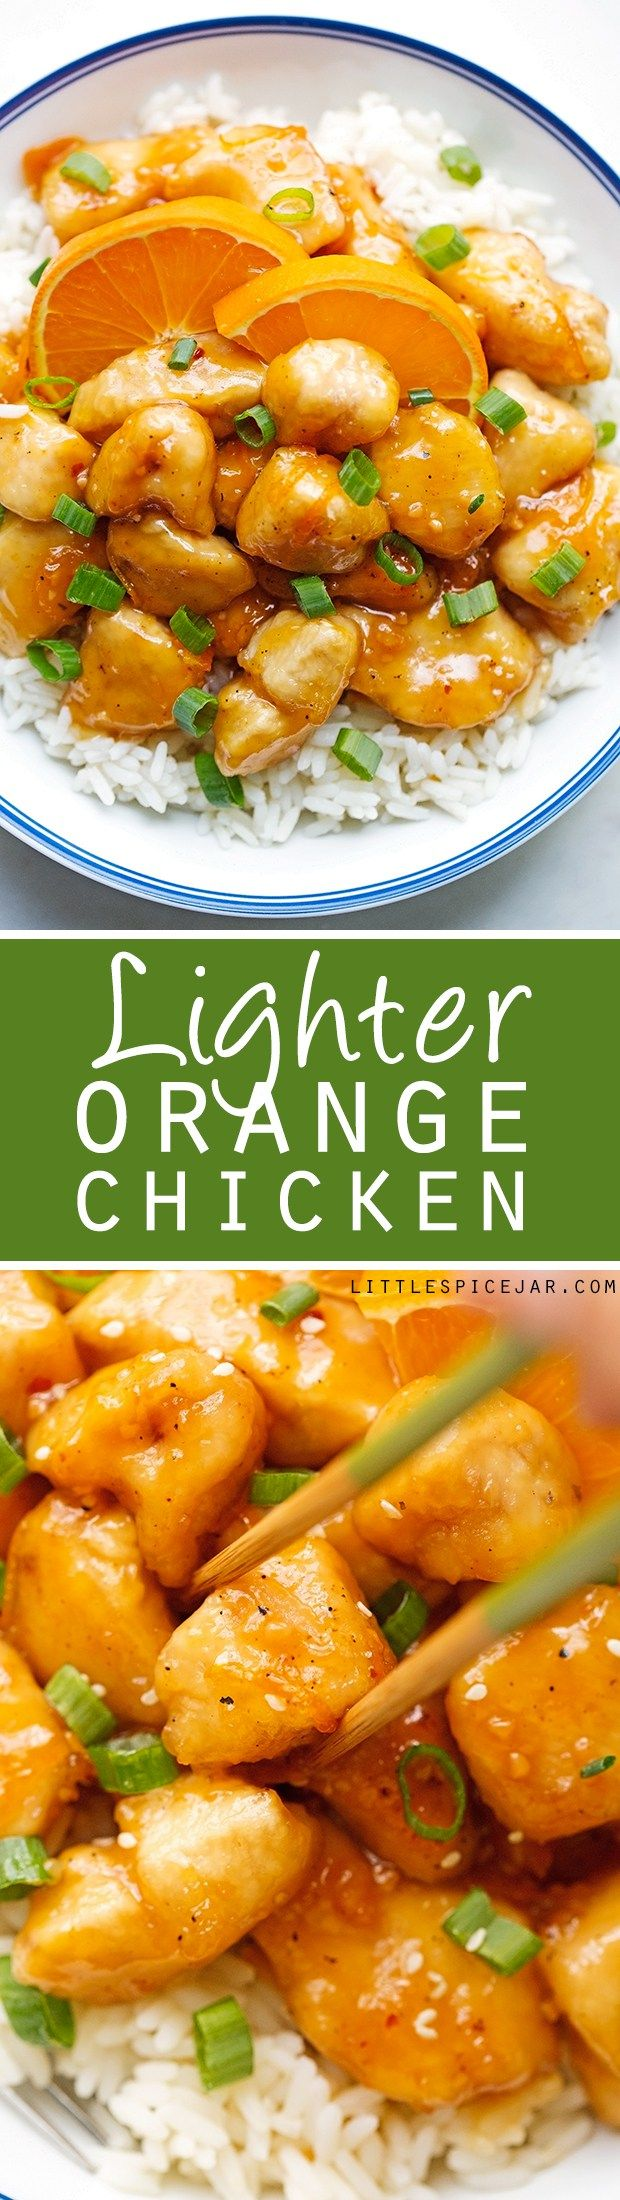 Best 25 orange chicken ideas on pinterest easy orange chicken lighter orange chicken recipe forumfinder